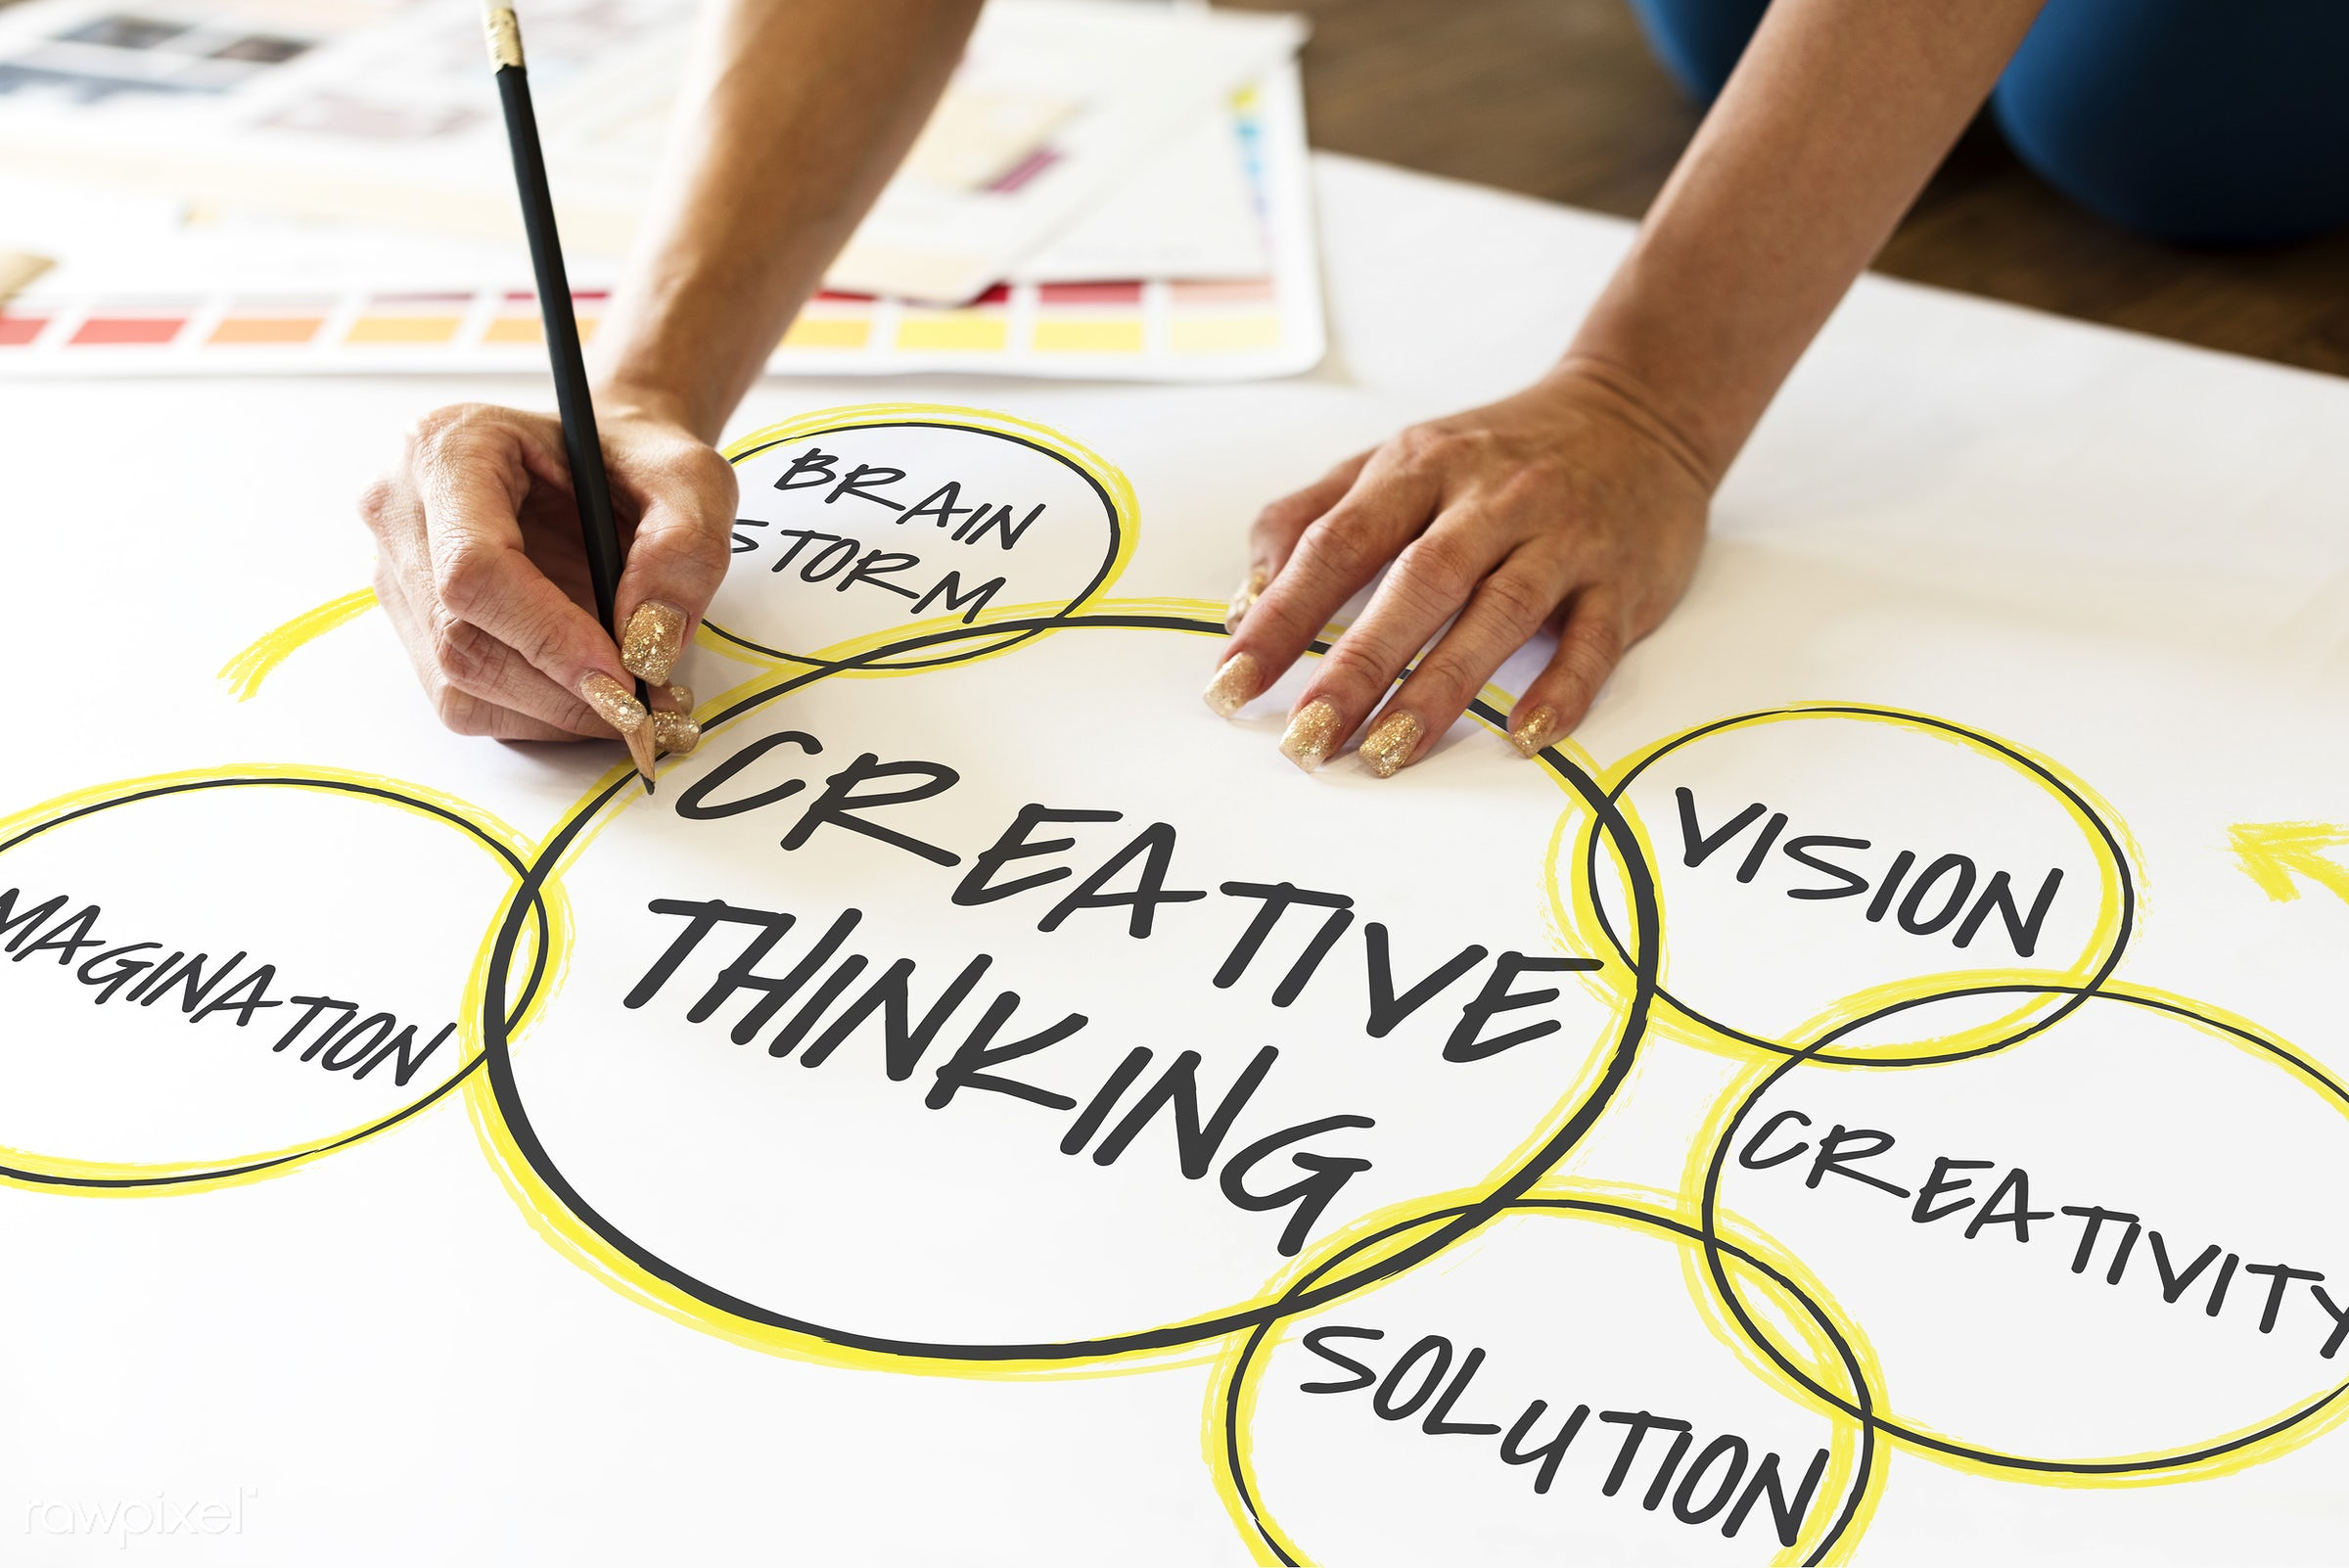 art, be creative, brainstorm, circle, connection, creation, creative, creative thinking, creativity, design, drawing, hands...